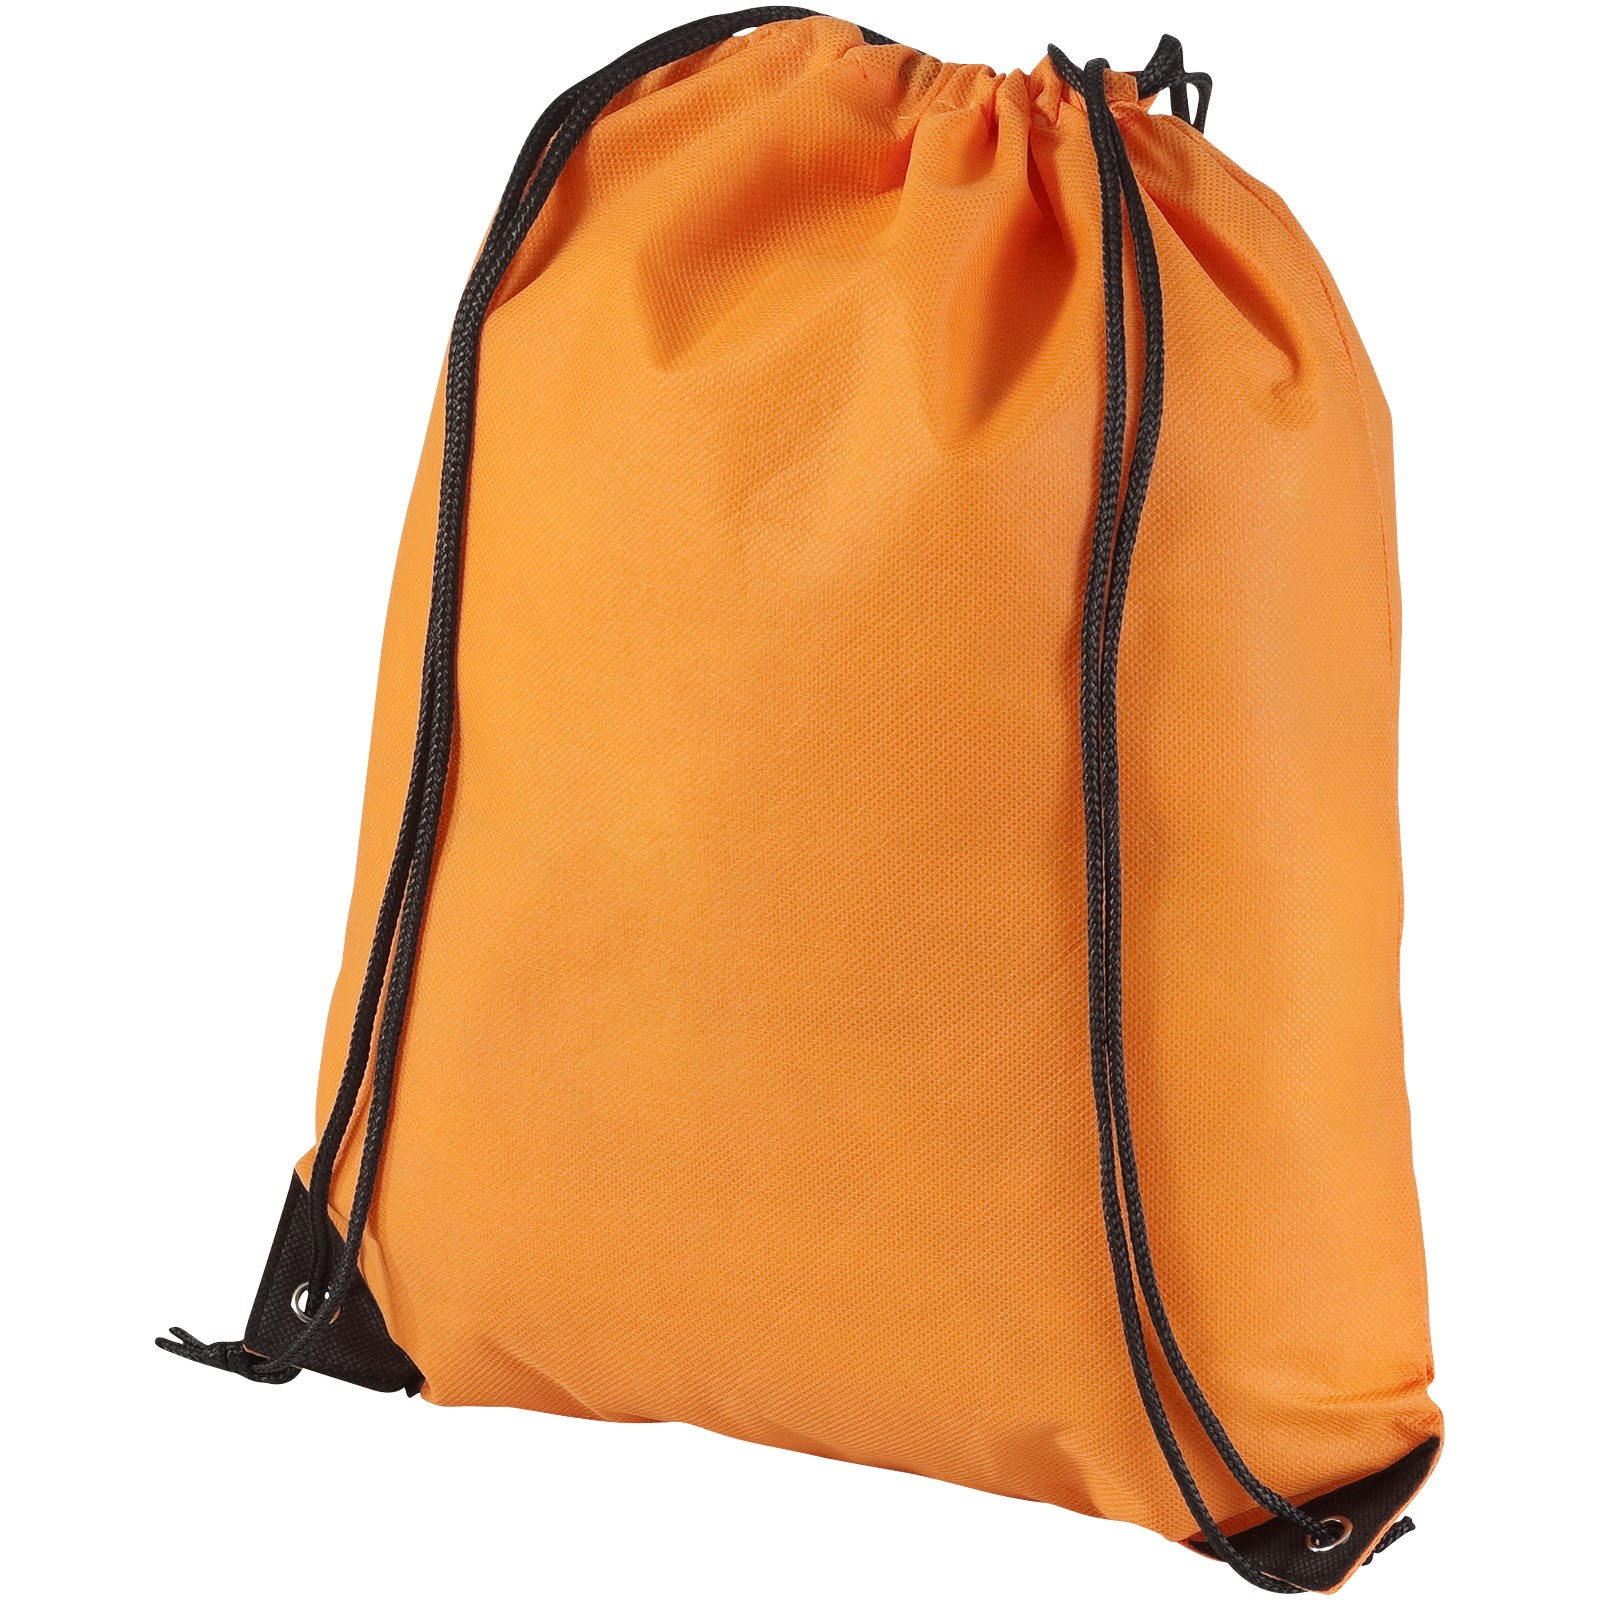 Evergreen non-woven drawstring backpack - Orange